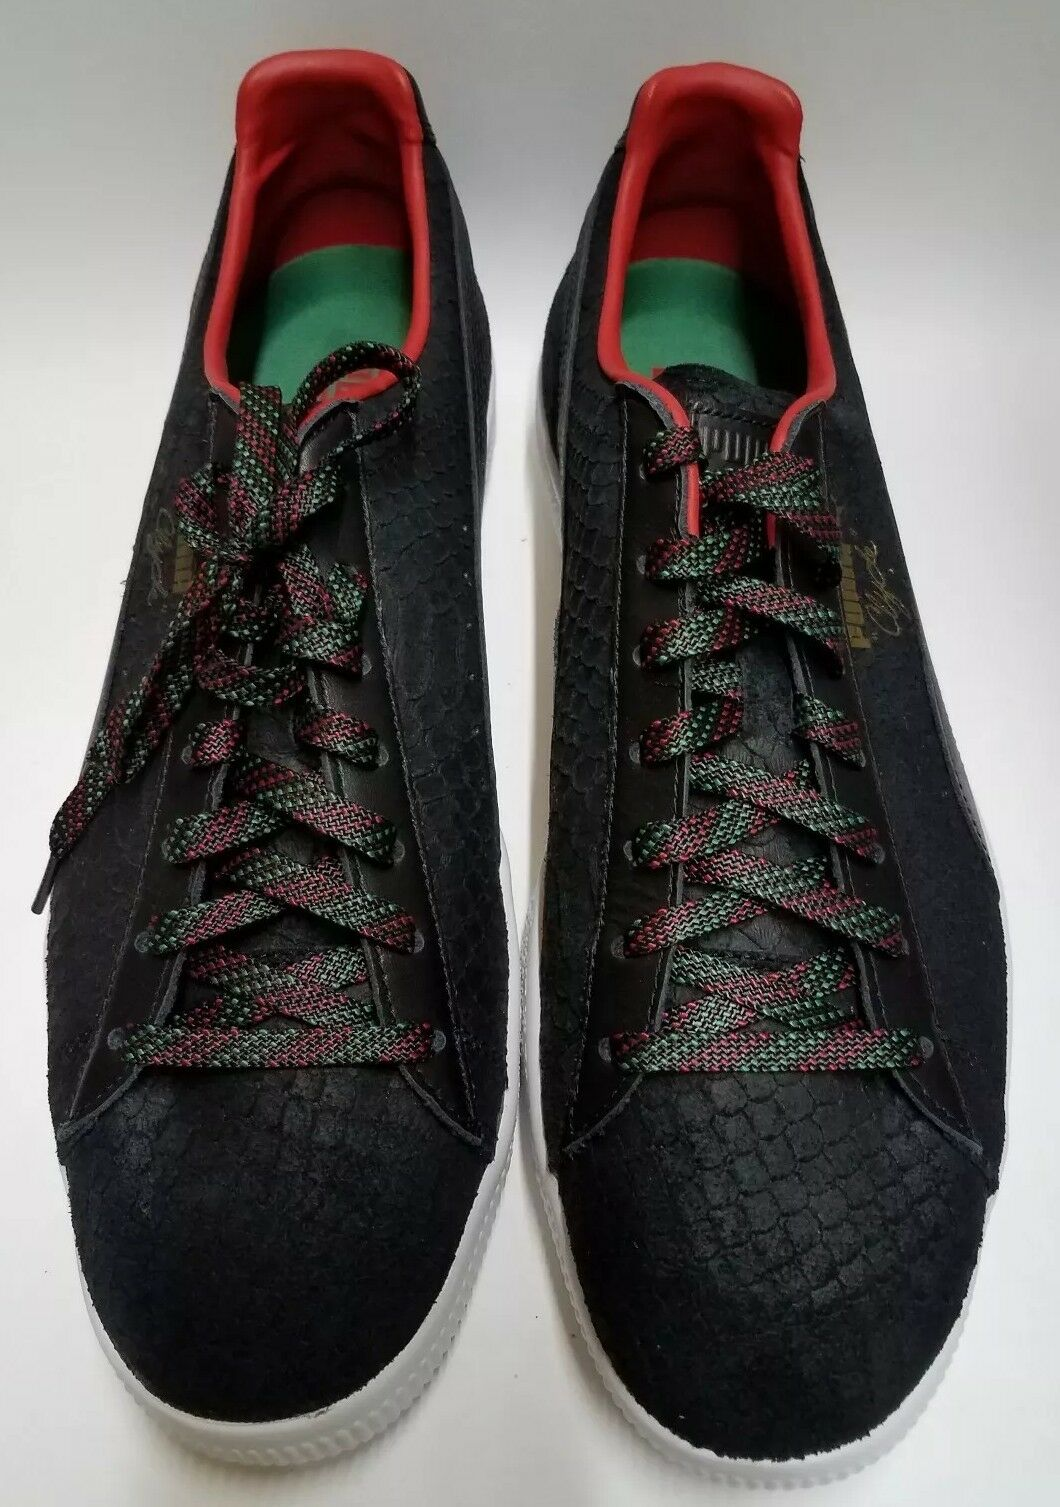 MENS PUMA CLYDE GCC negro rojo LIMITED EDITION FRASIER CASUAL zapatos Sz 13